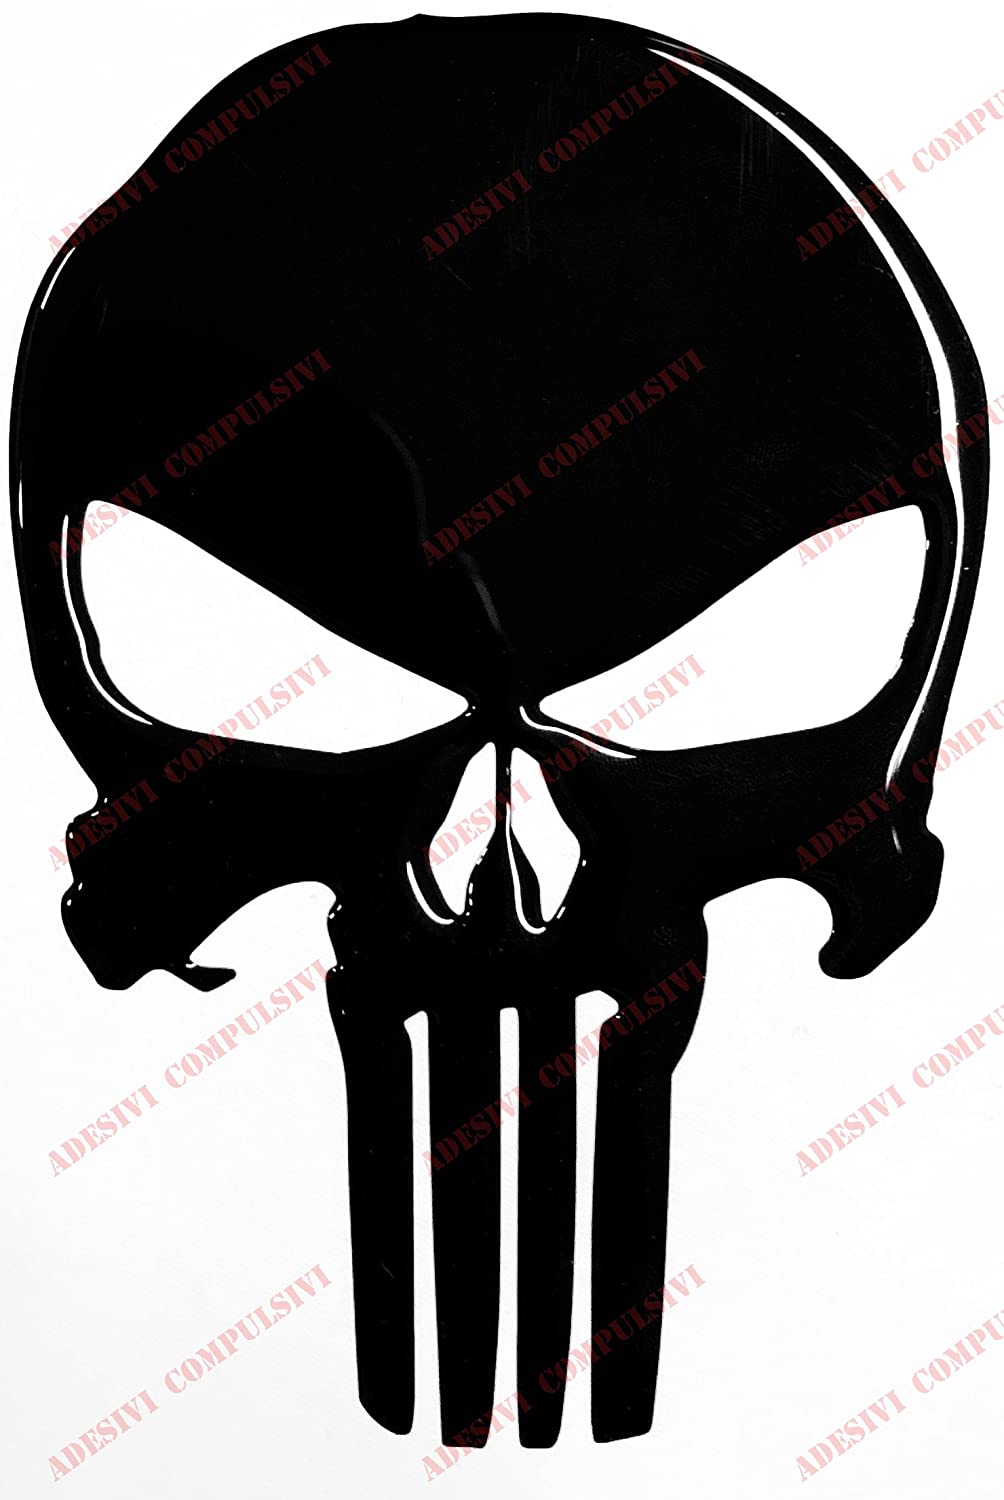 Amazon fr adesivi compulsivi sticker the punisher résine effet 3d sticker pour voiture moto réservoir casque adapté à surfaces lisses et curve